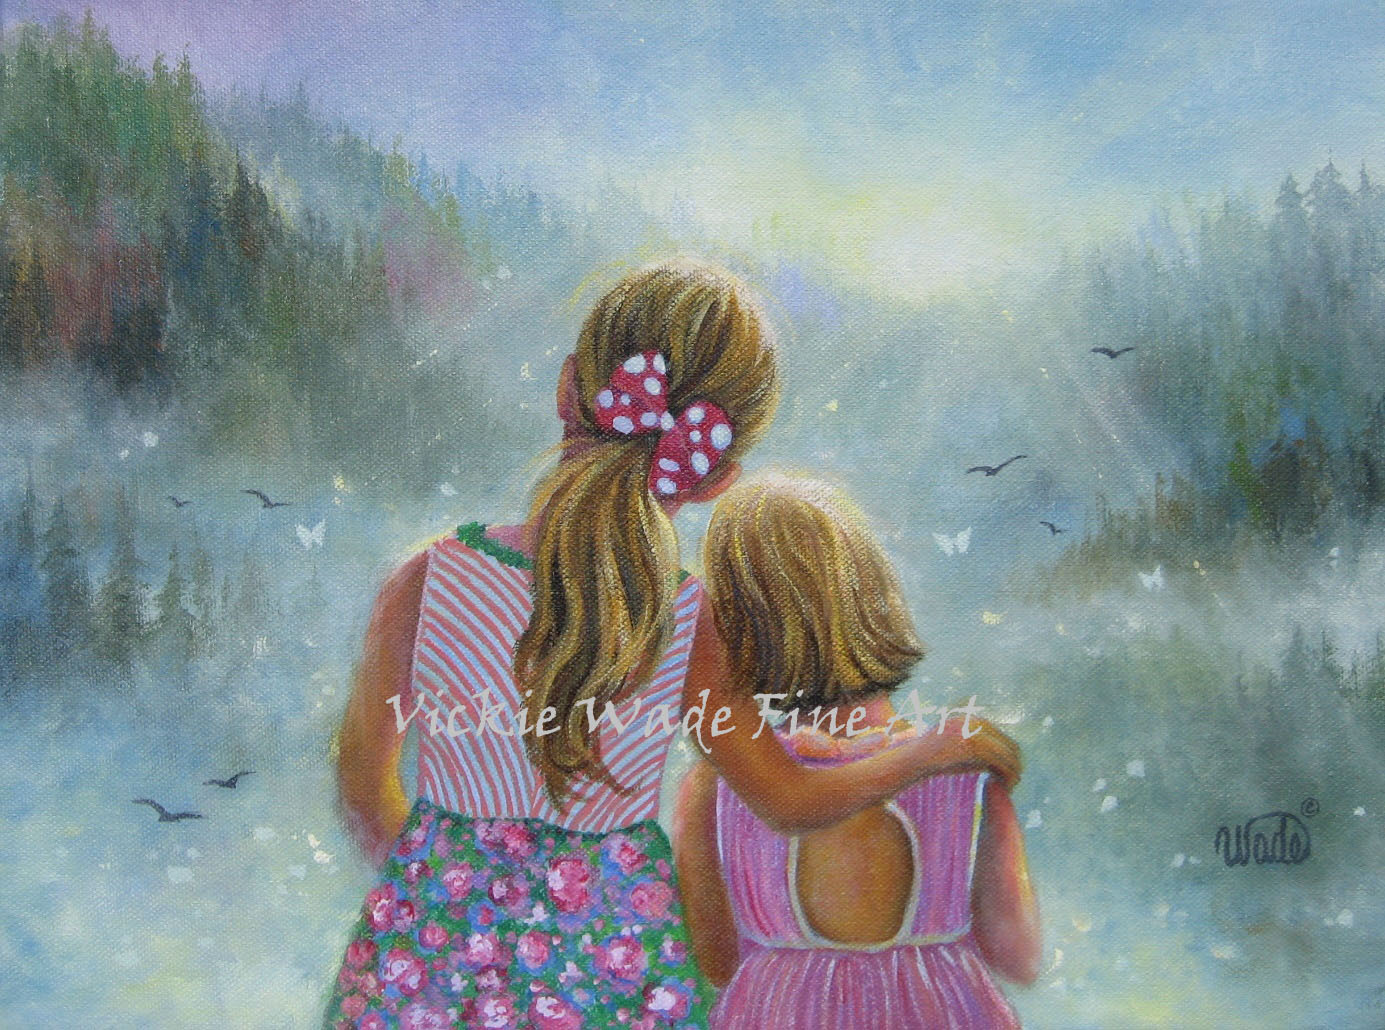 Two sisters vickie wade fine art for Art and craft drawing and painting